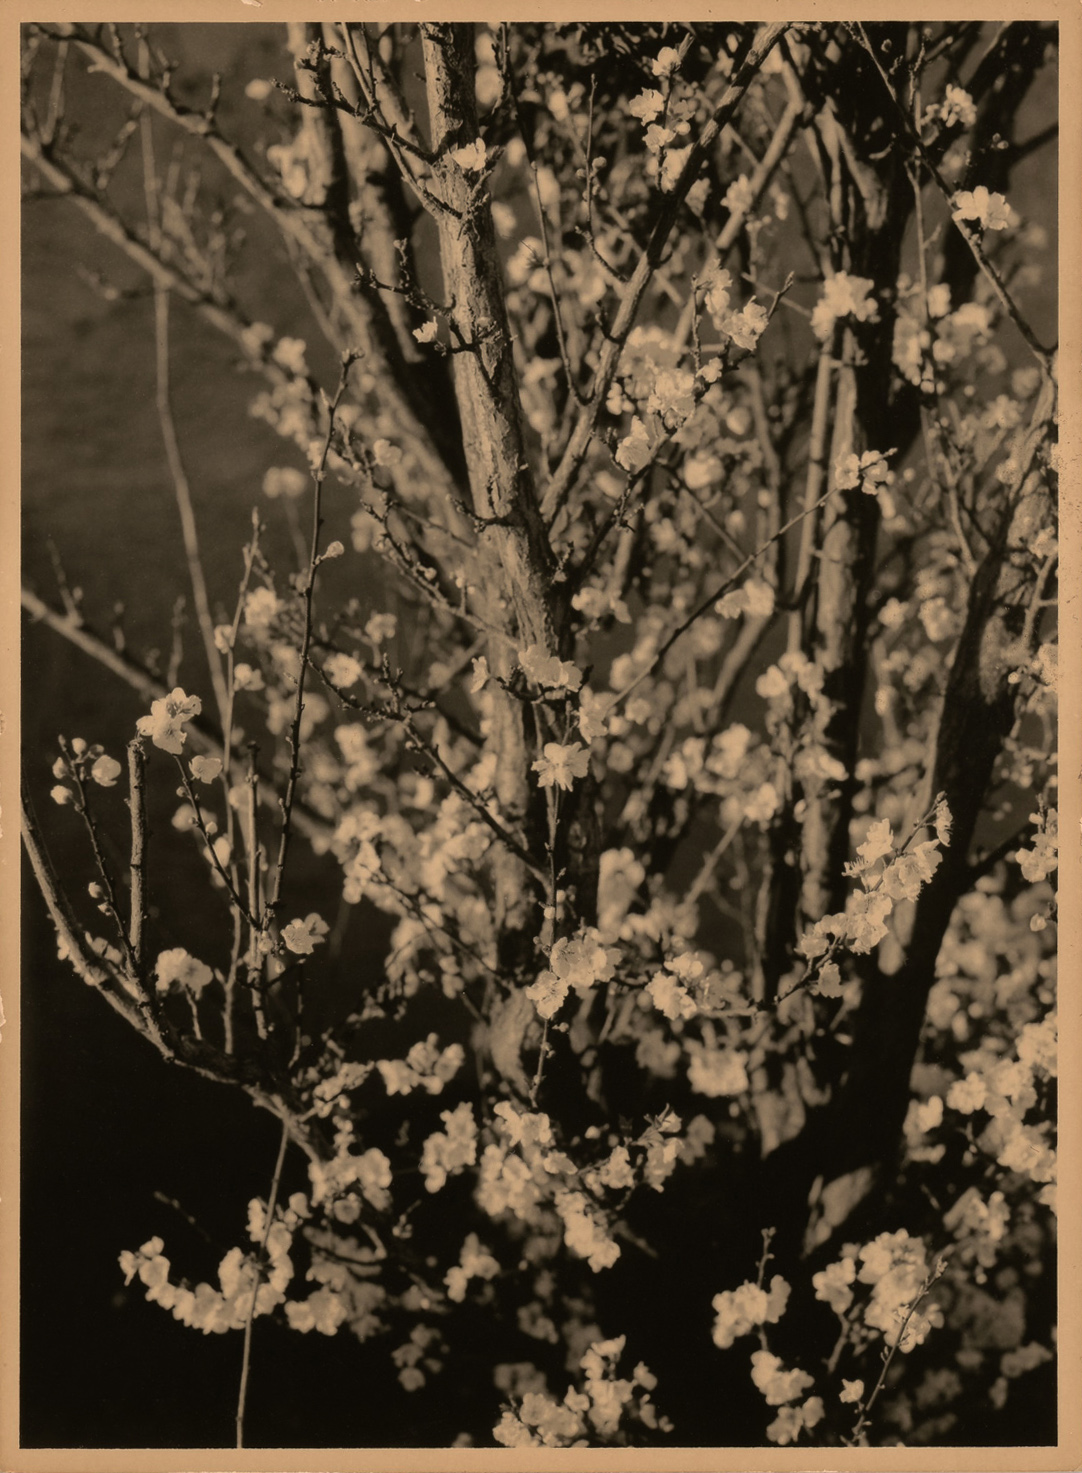 Branches and Flowers